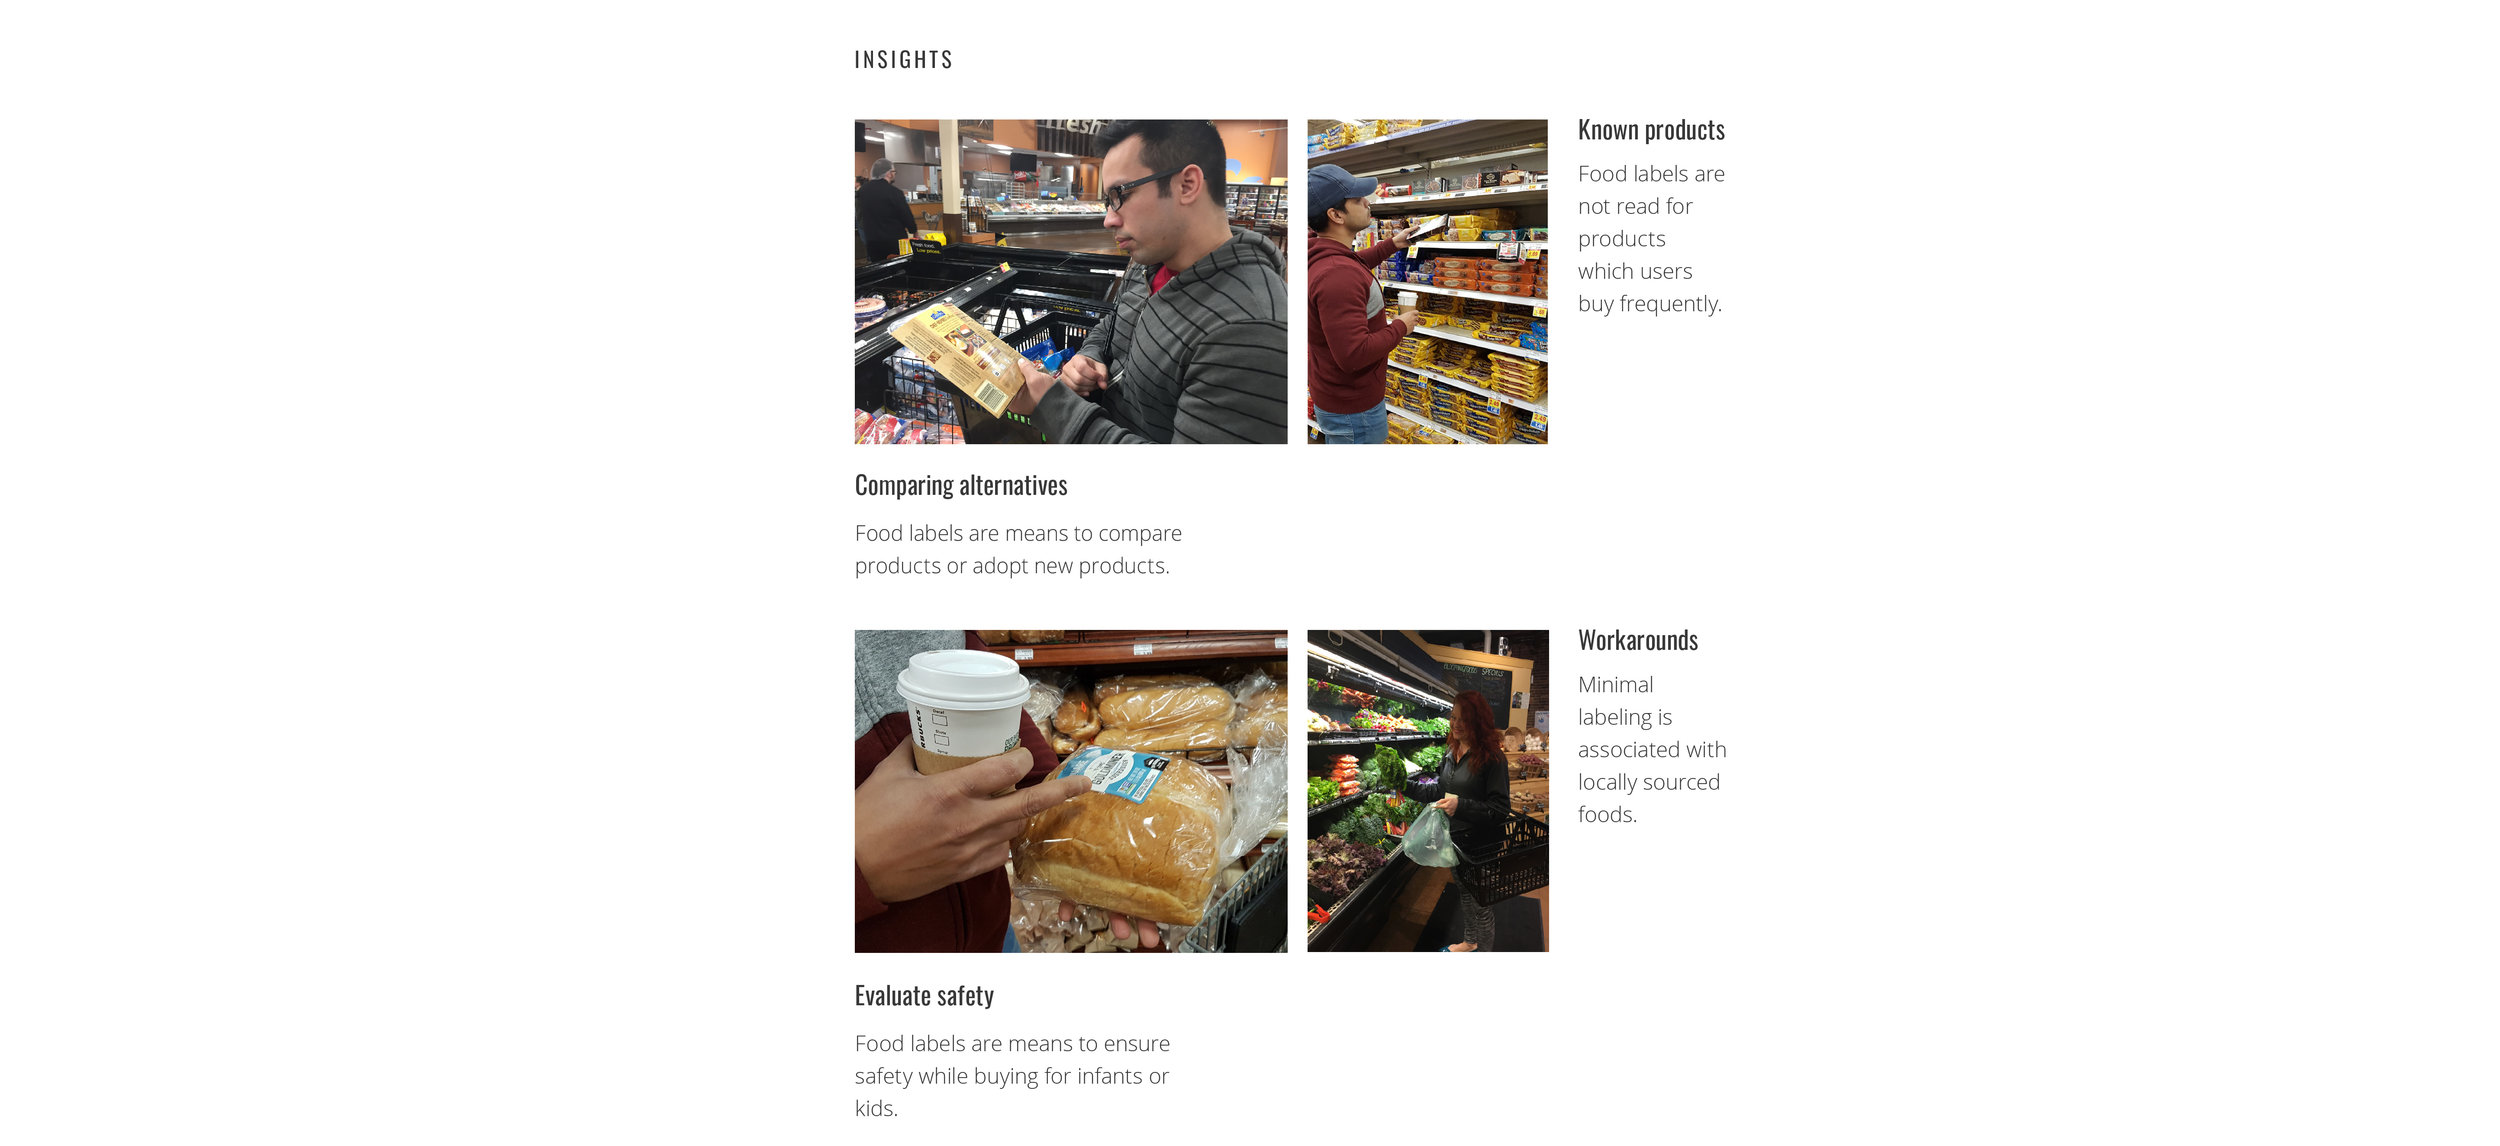 This images depicts contextual inquiry and photos of participants purchasing food. We found that food labels are often used to compare and evaluate safety.